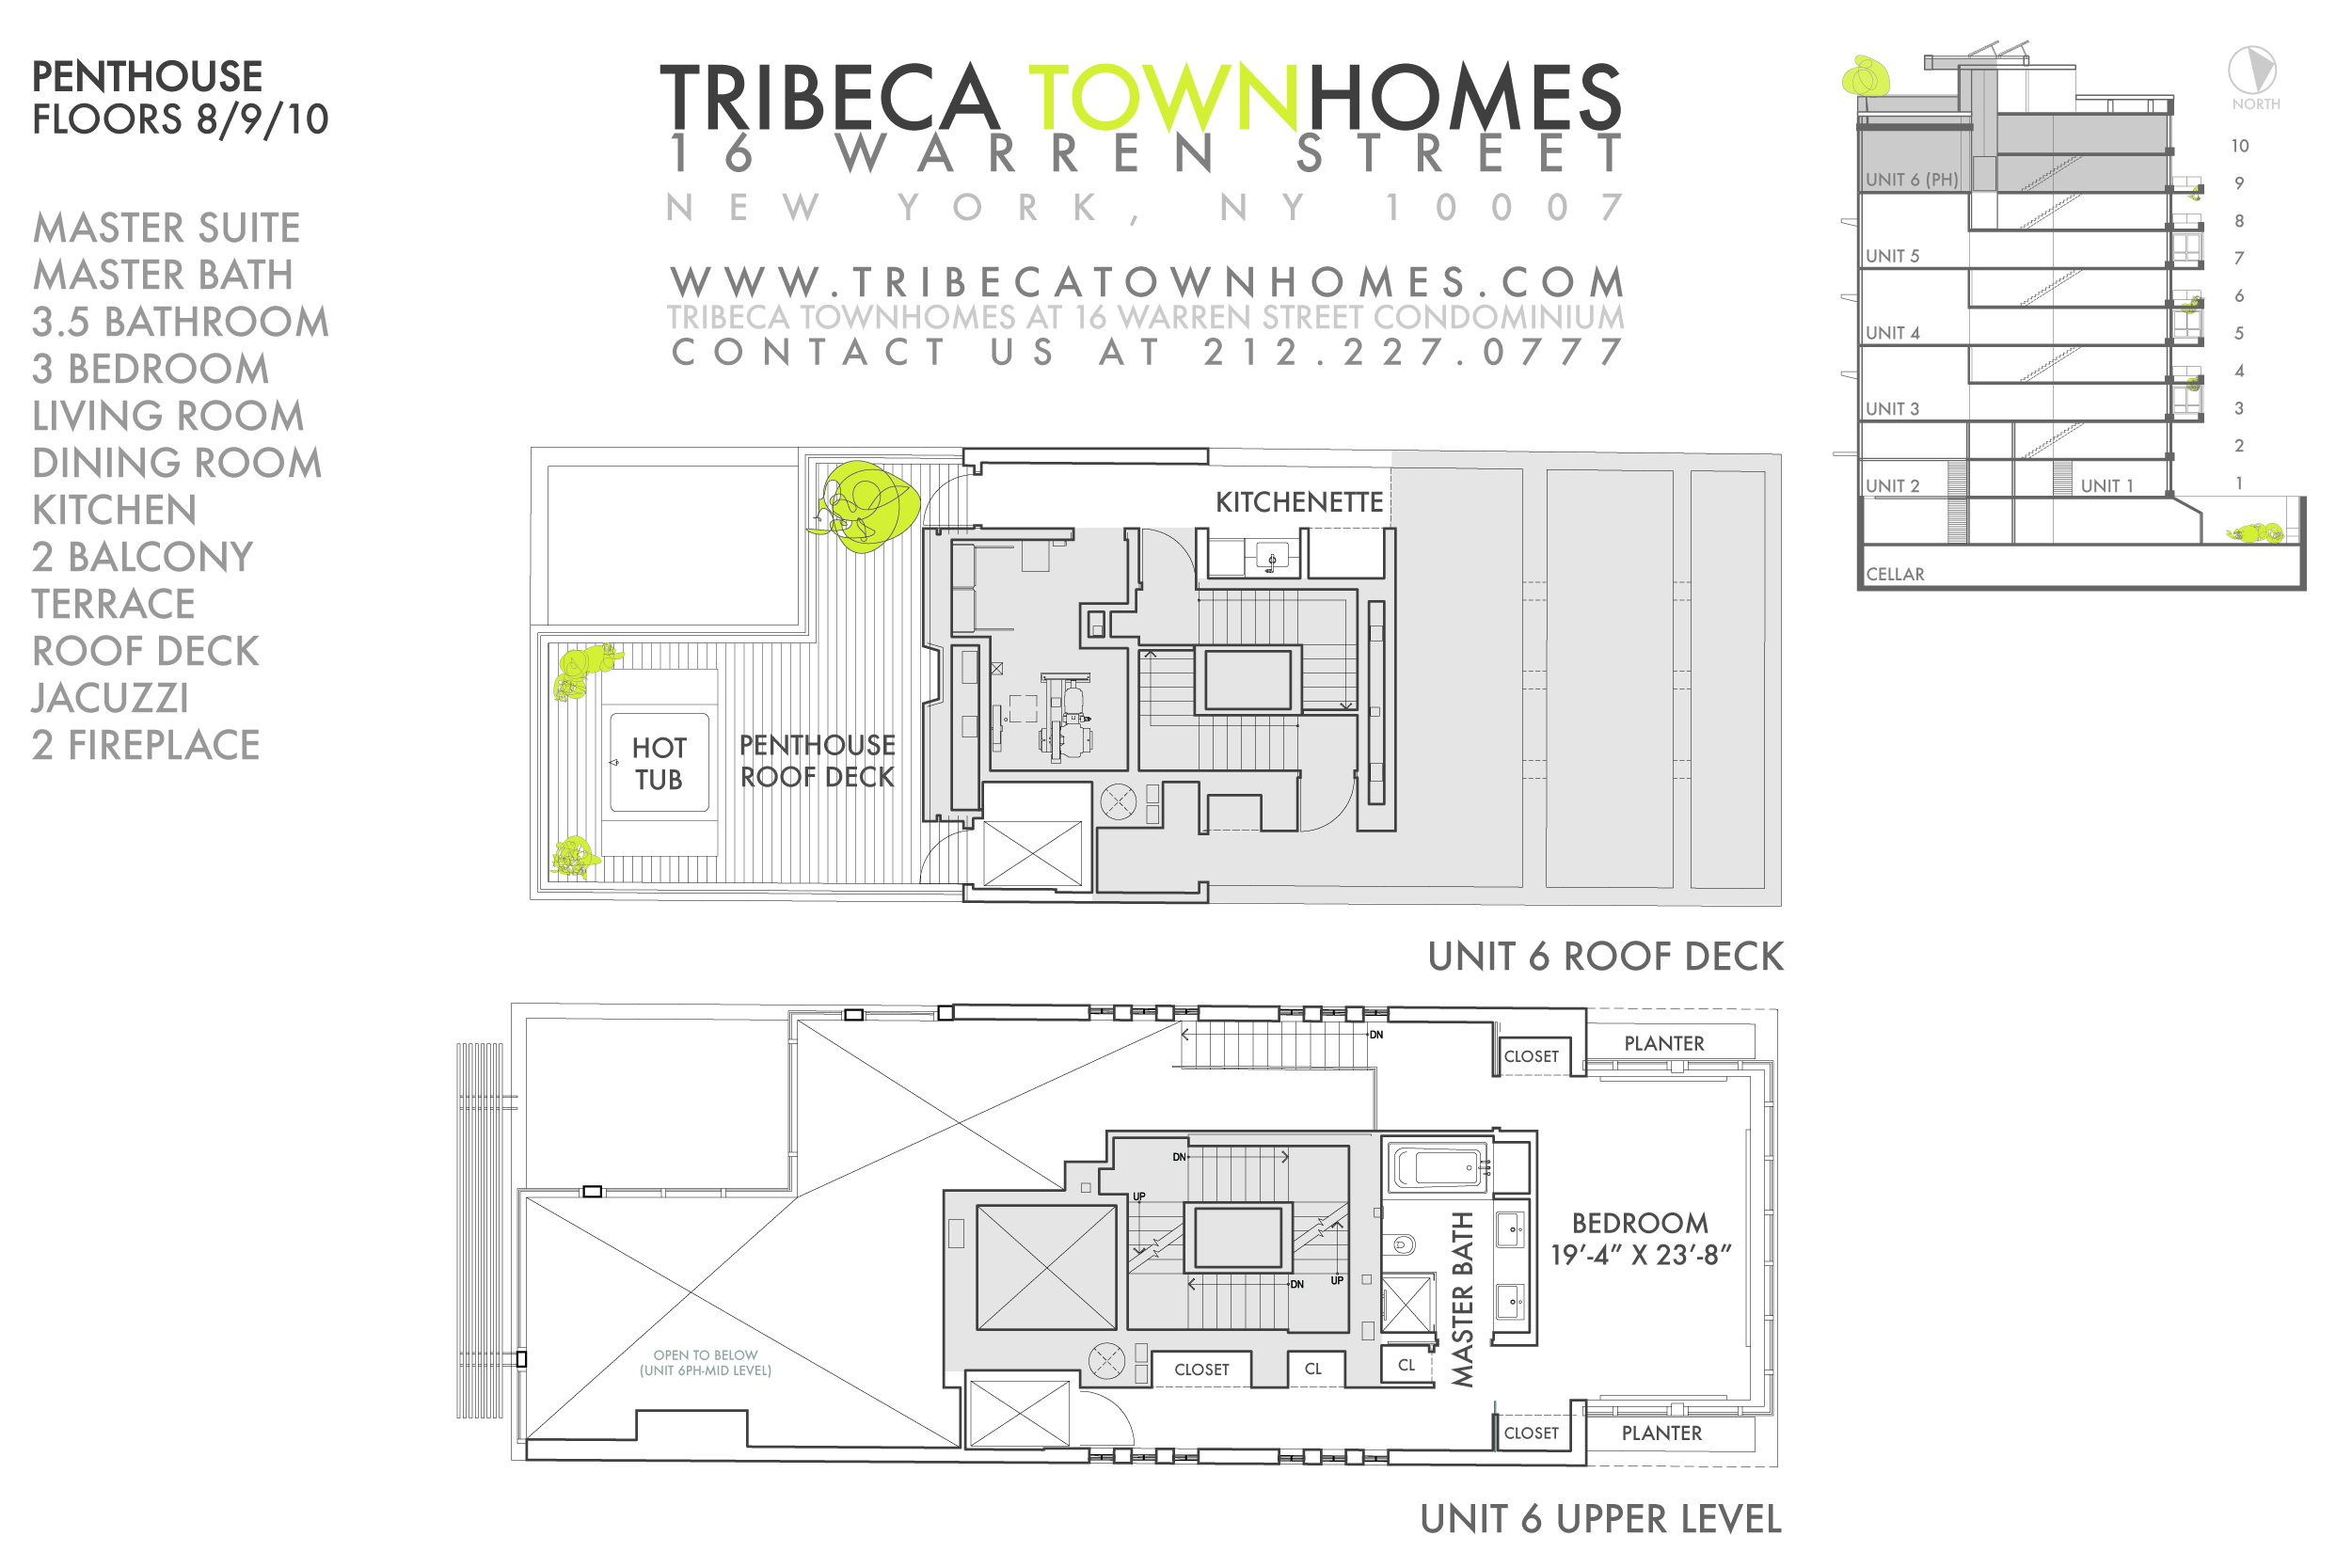 PH TRIBECA TRIPLEX 3 BRDS 3.5 BATH IN GREEN BUILDING